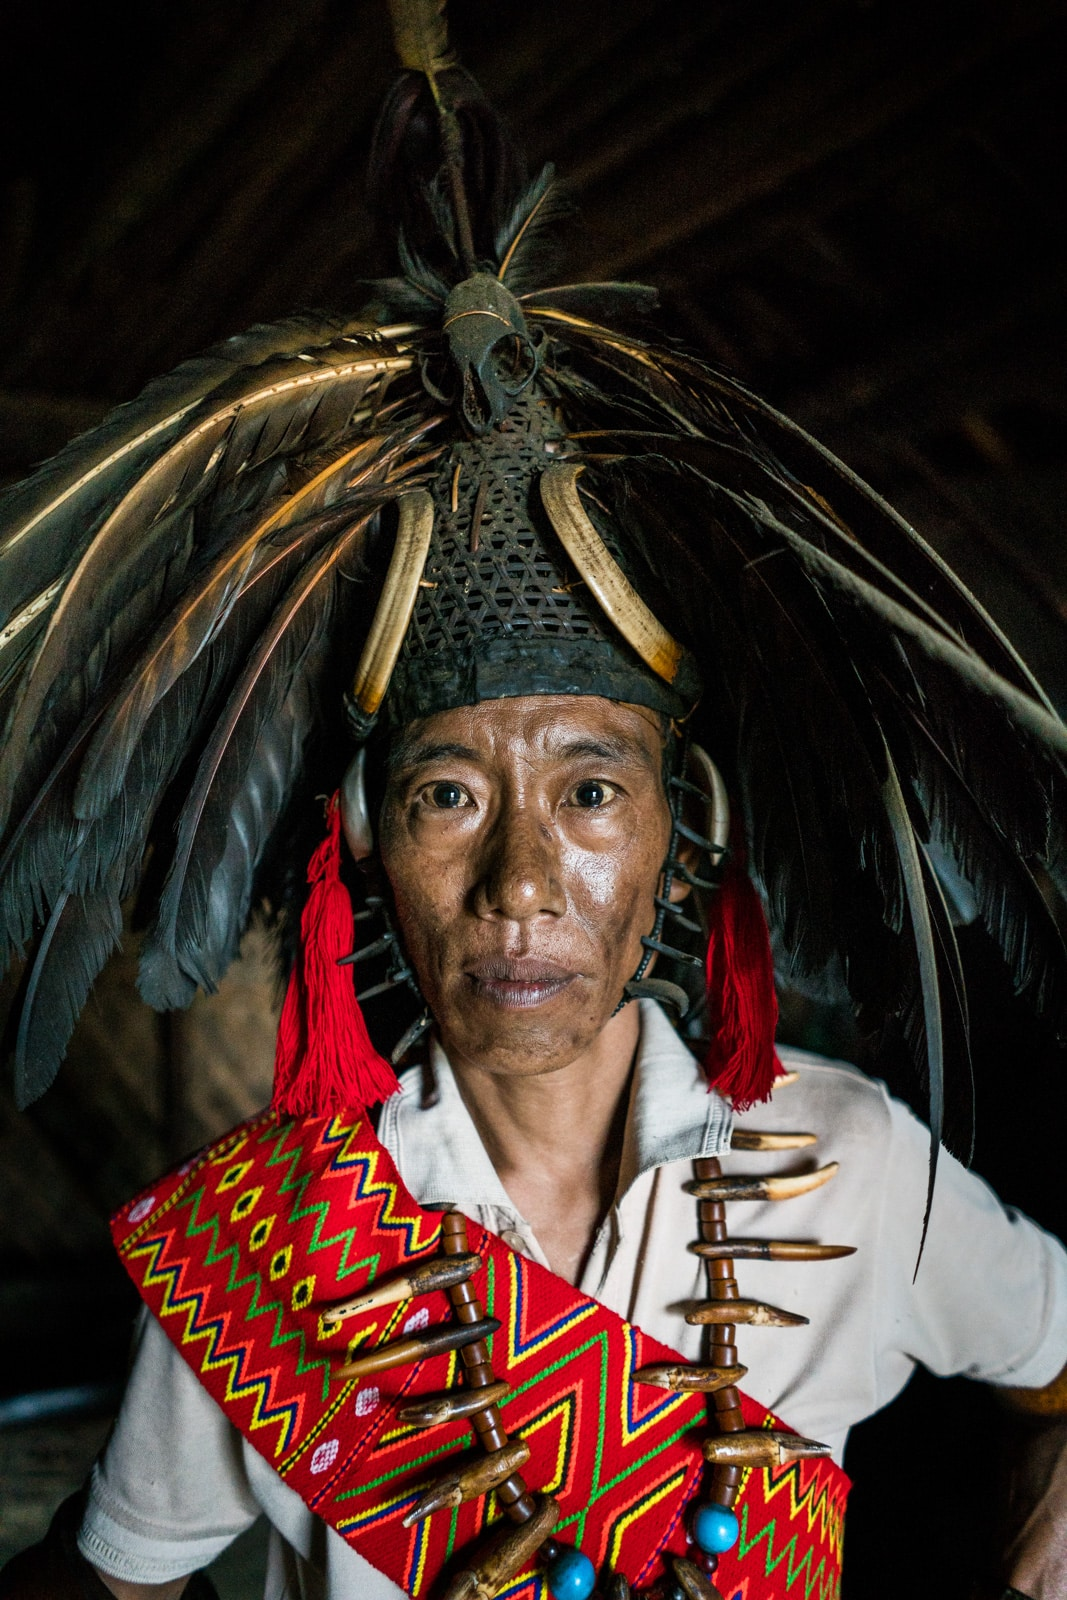 A local man from Longwa village, Nagaland, India in traditional headhunter attire.